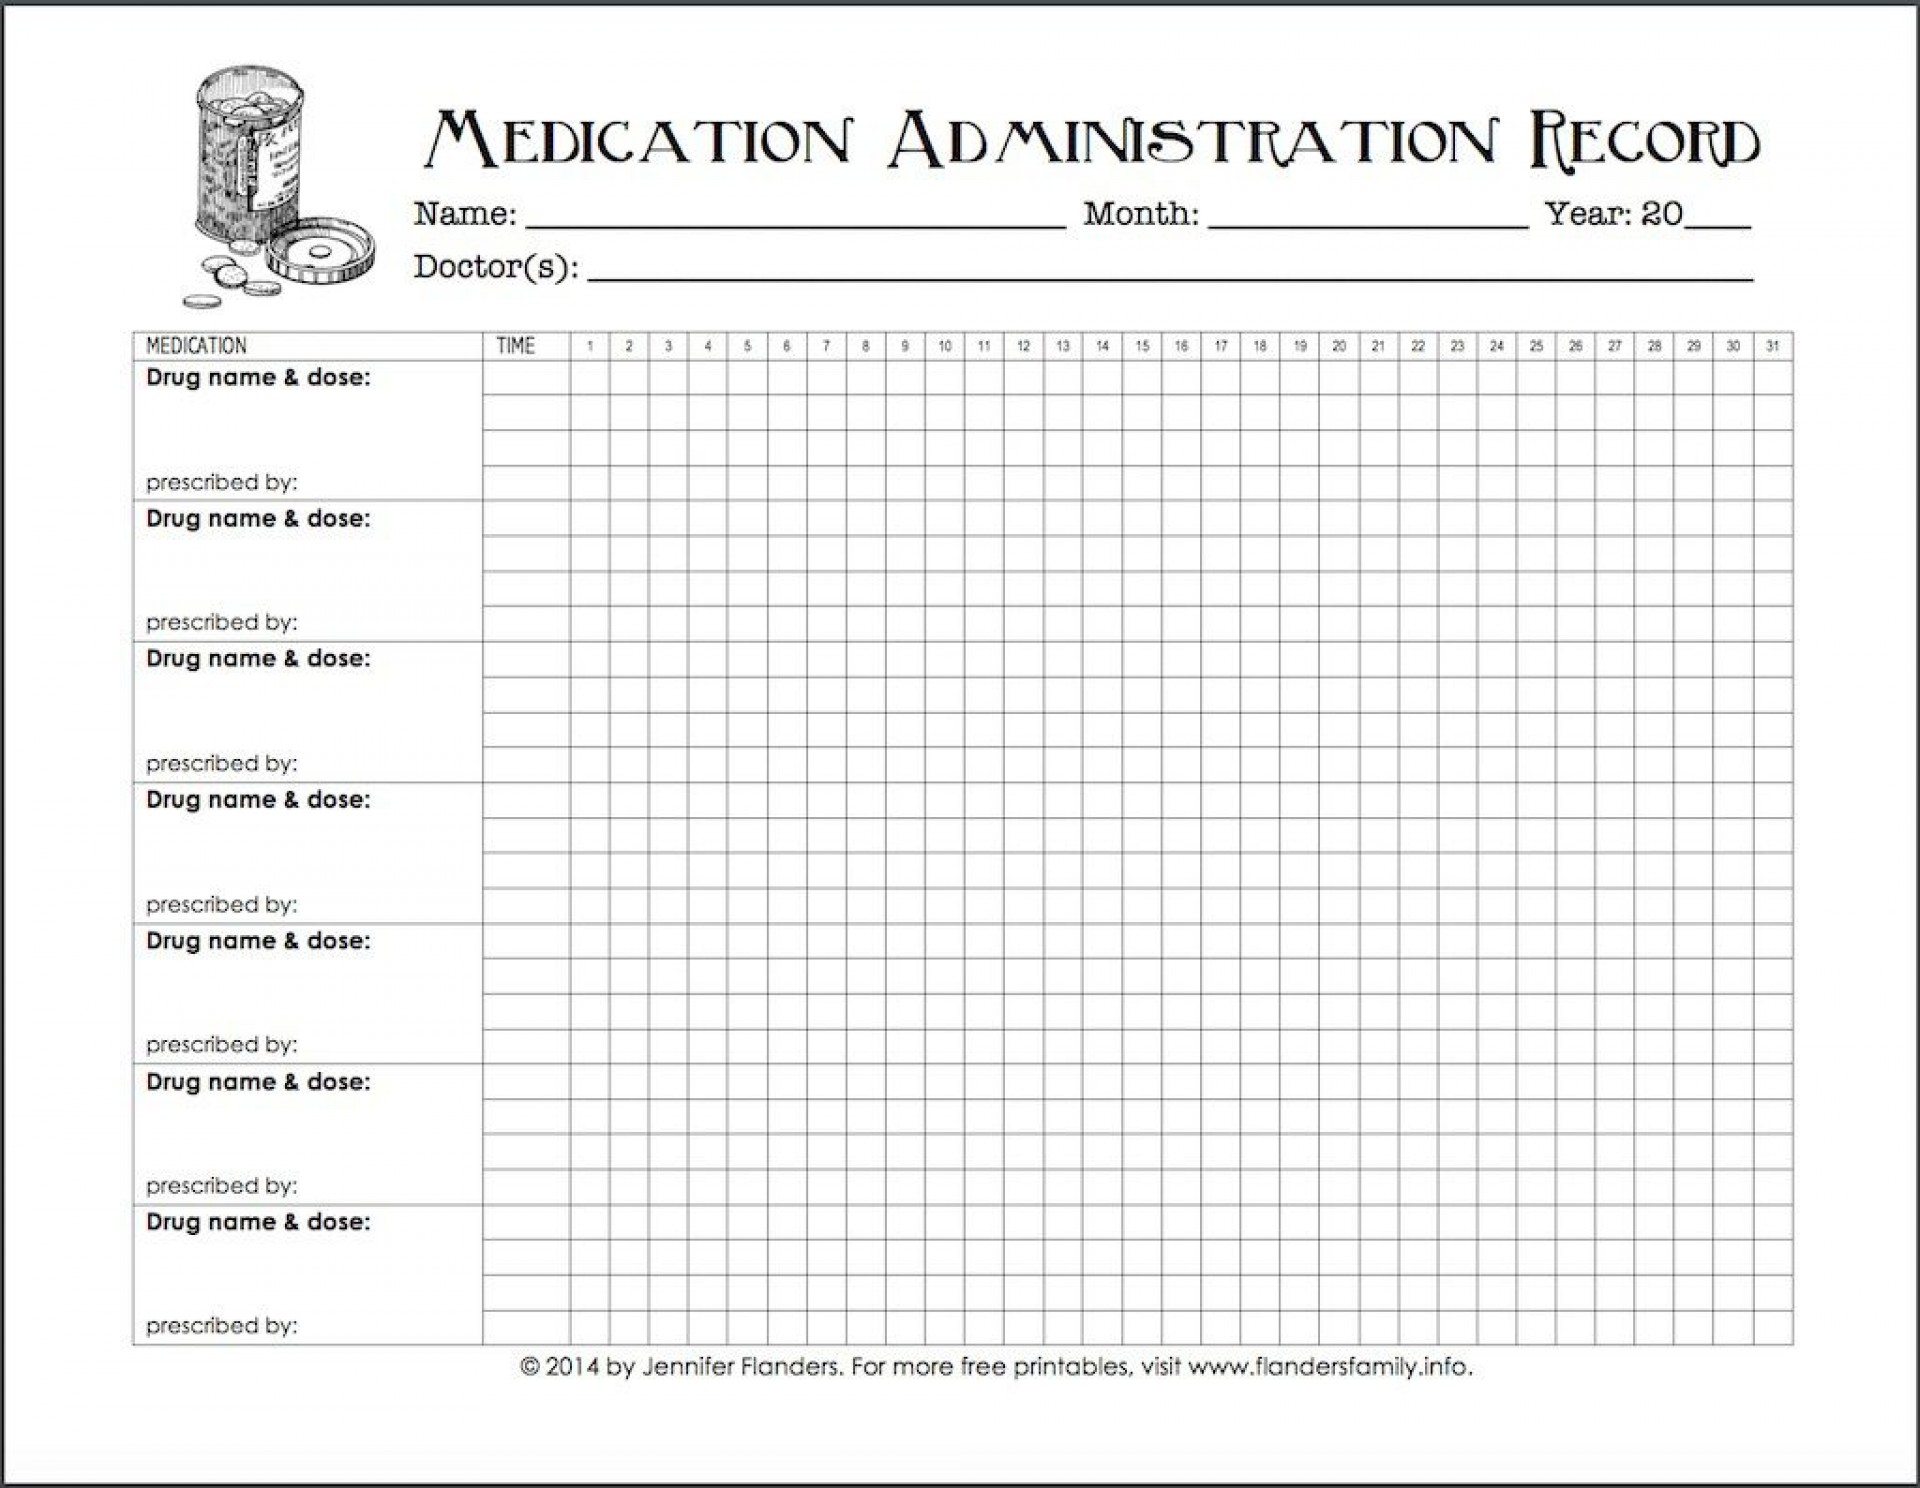 008 Stupendou Medication Administration Record Template Image  Templates Medicine Sheet1920